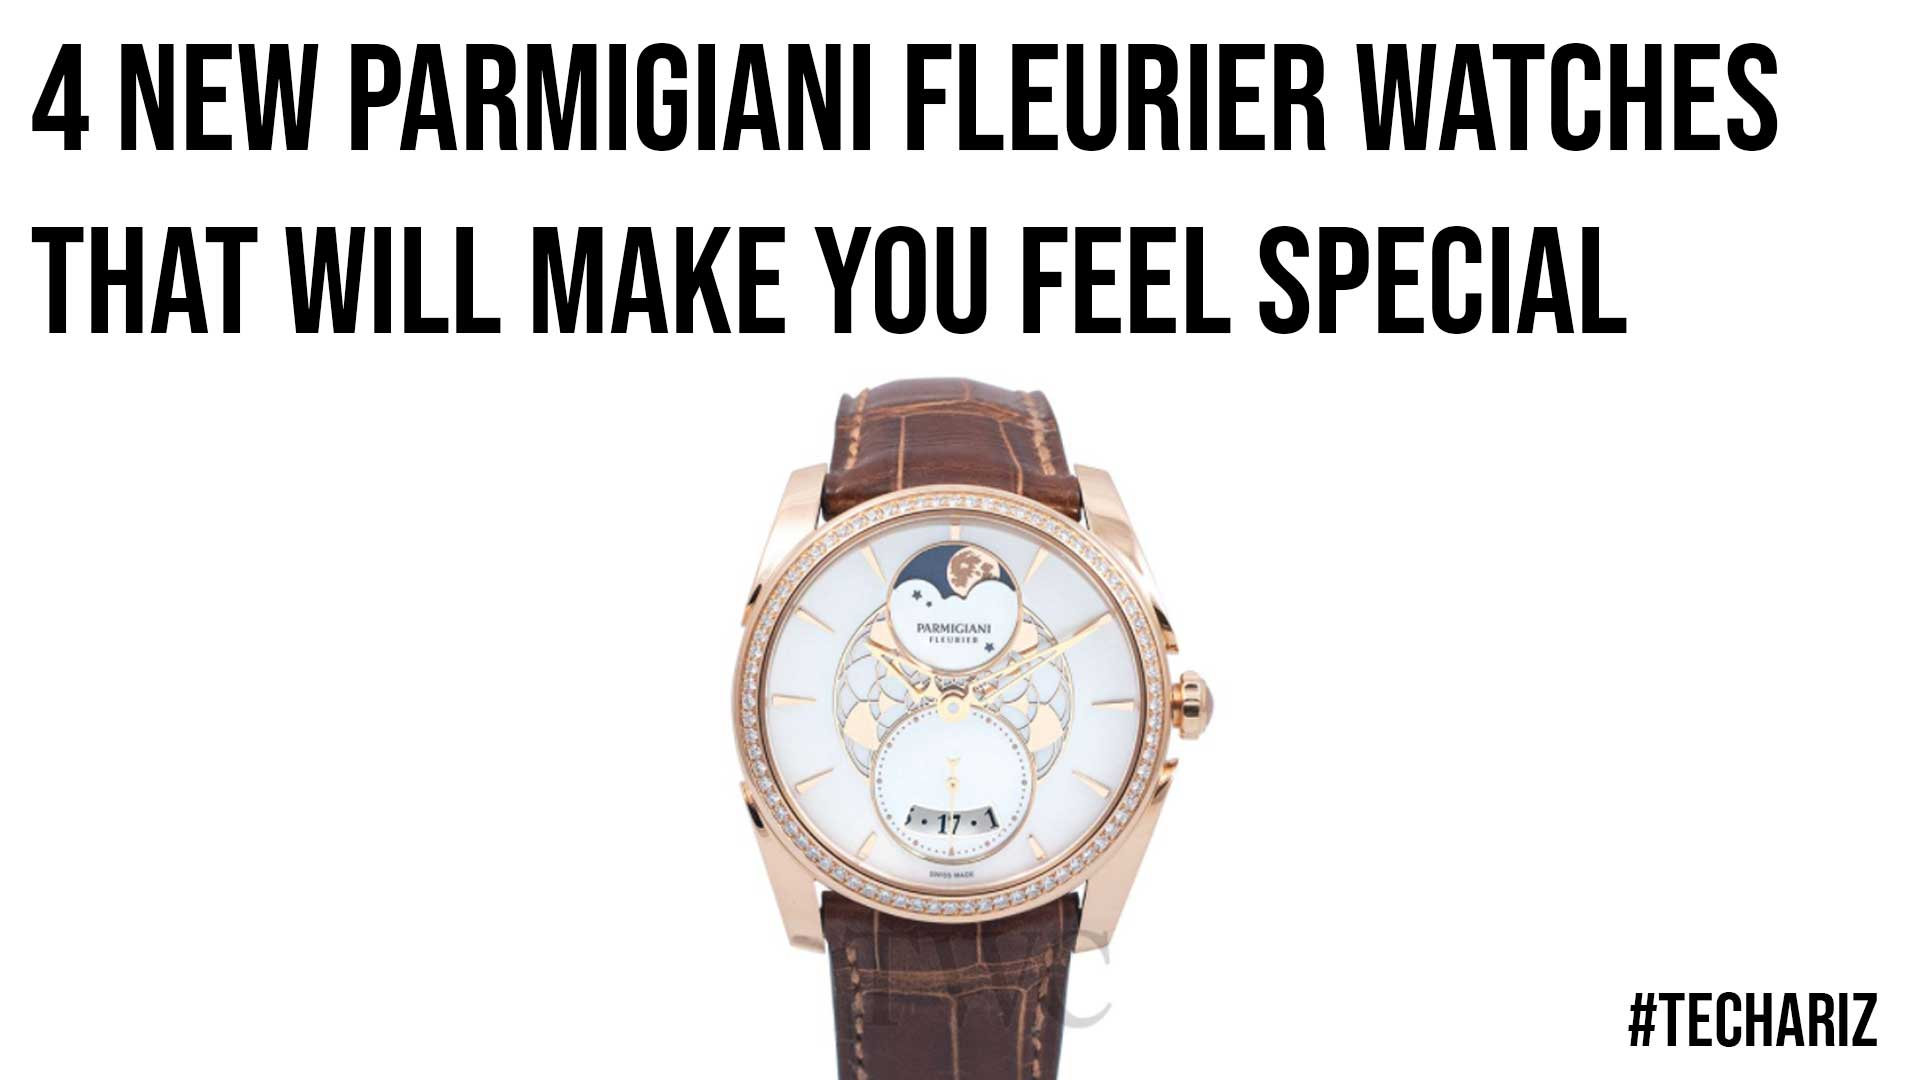 4 New Parmigiani Fleurier Watches That Will Make You Feel Special